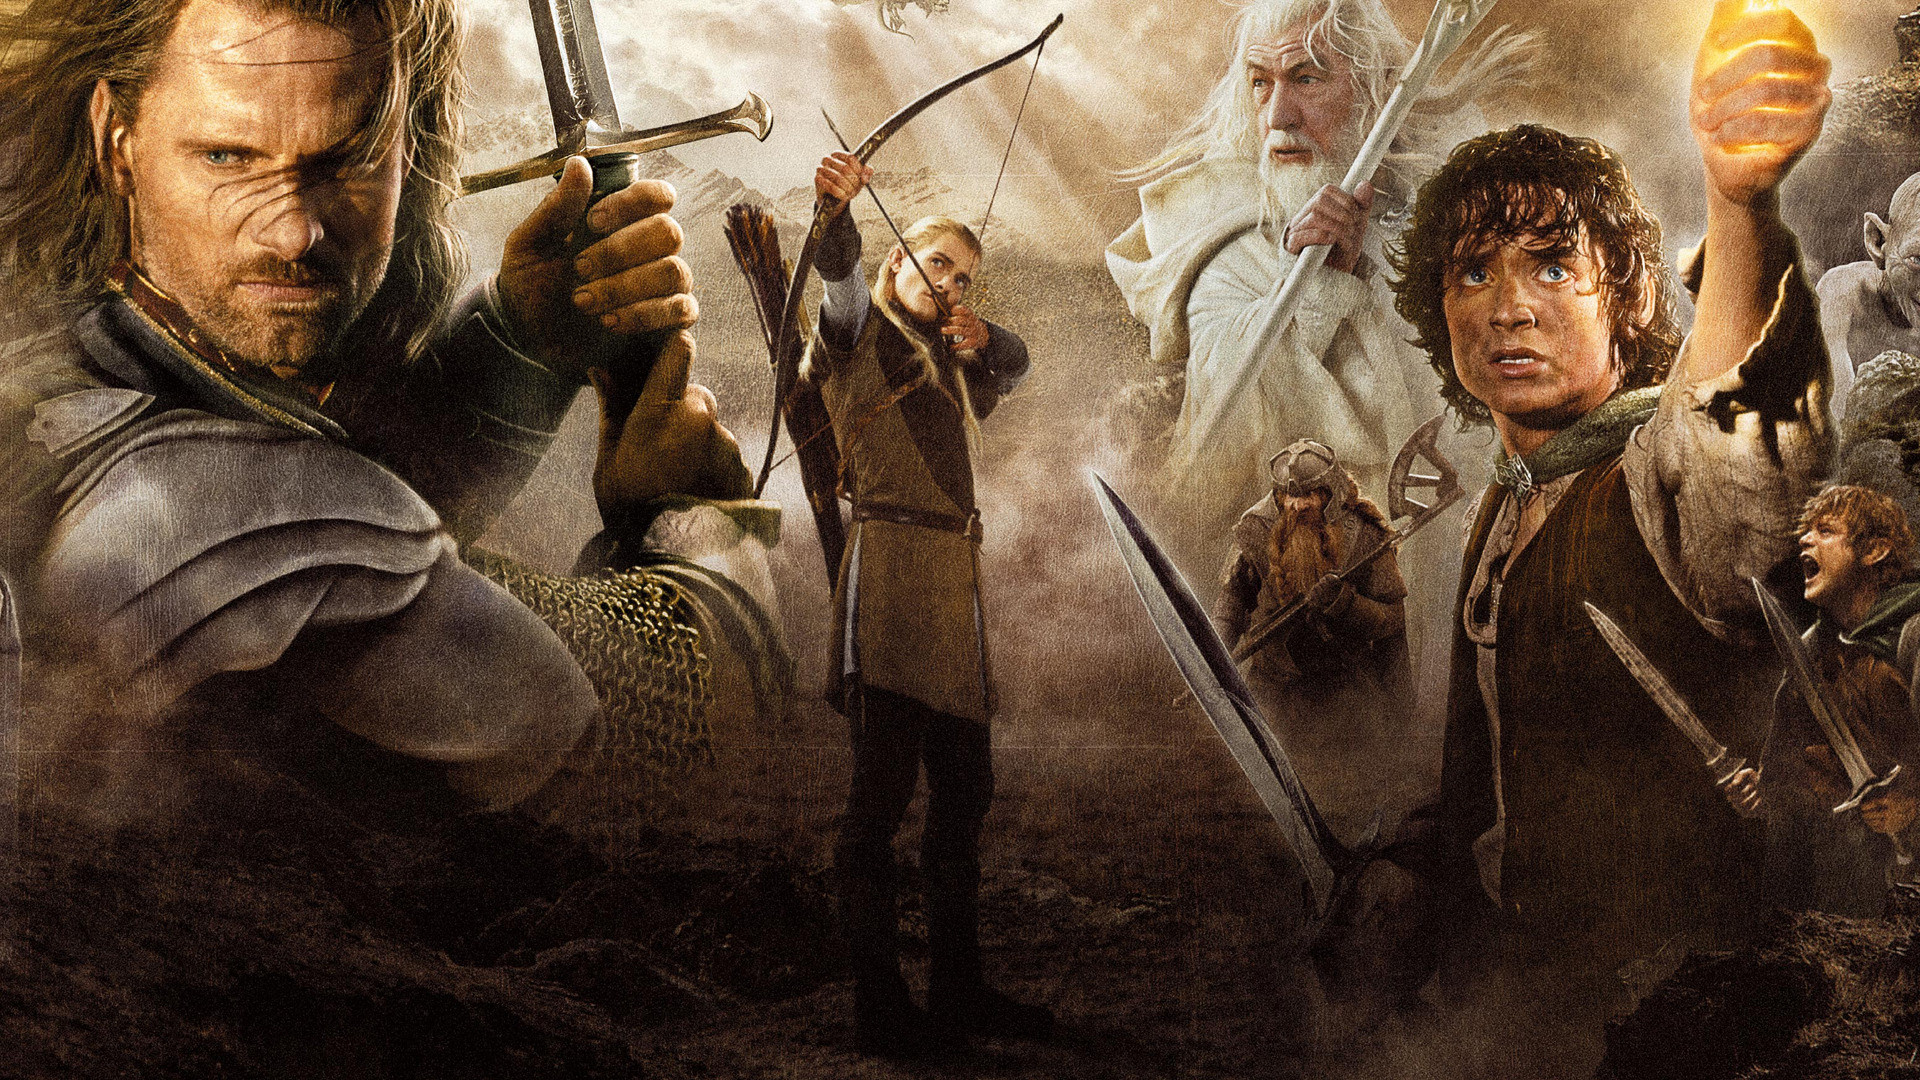 Ch�a T? C?a Nh?ng Chi?c Nh?n: Ph?n 1 - The Lord Of The Rings: The Fellowship Of The Ring